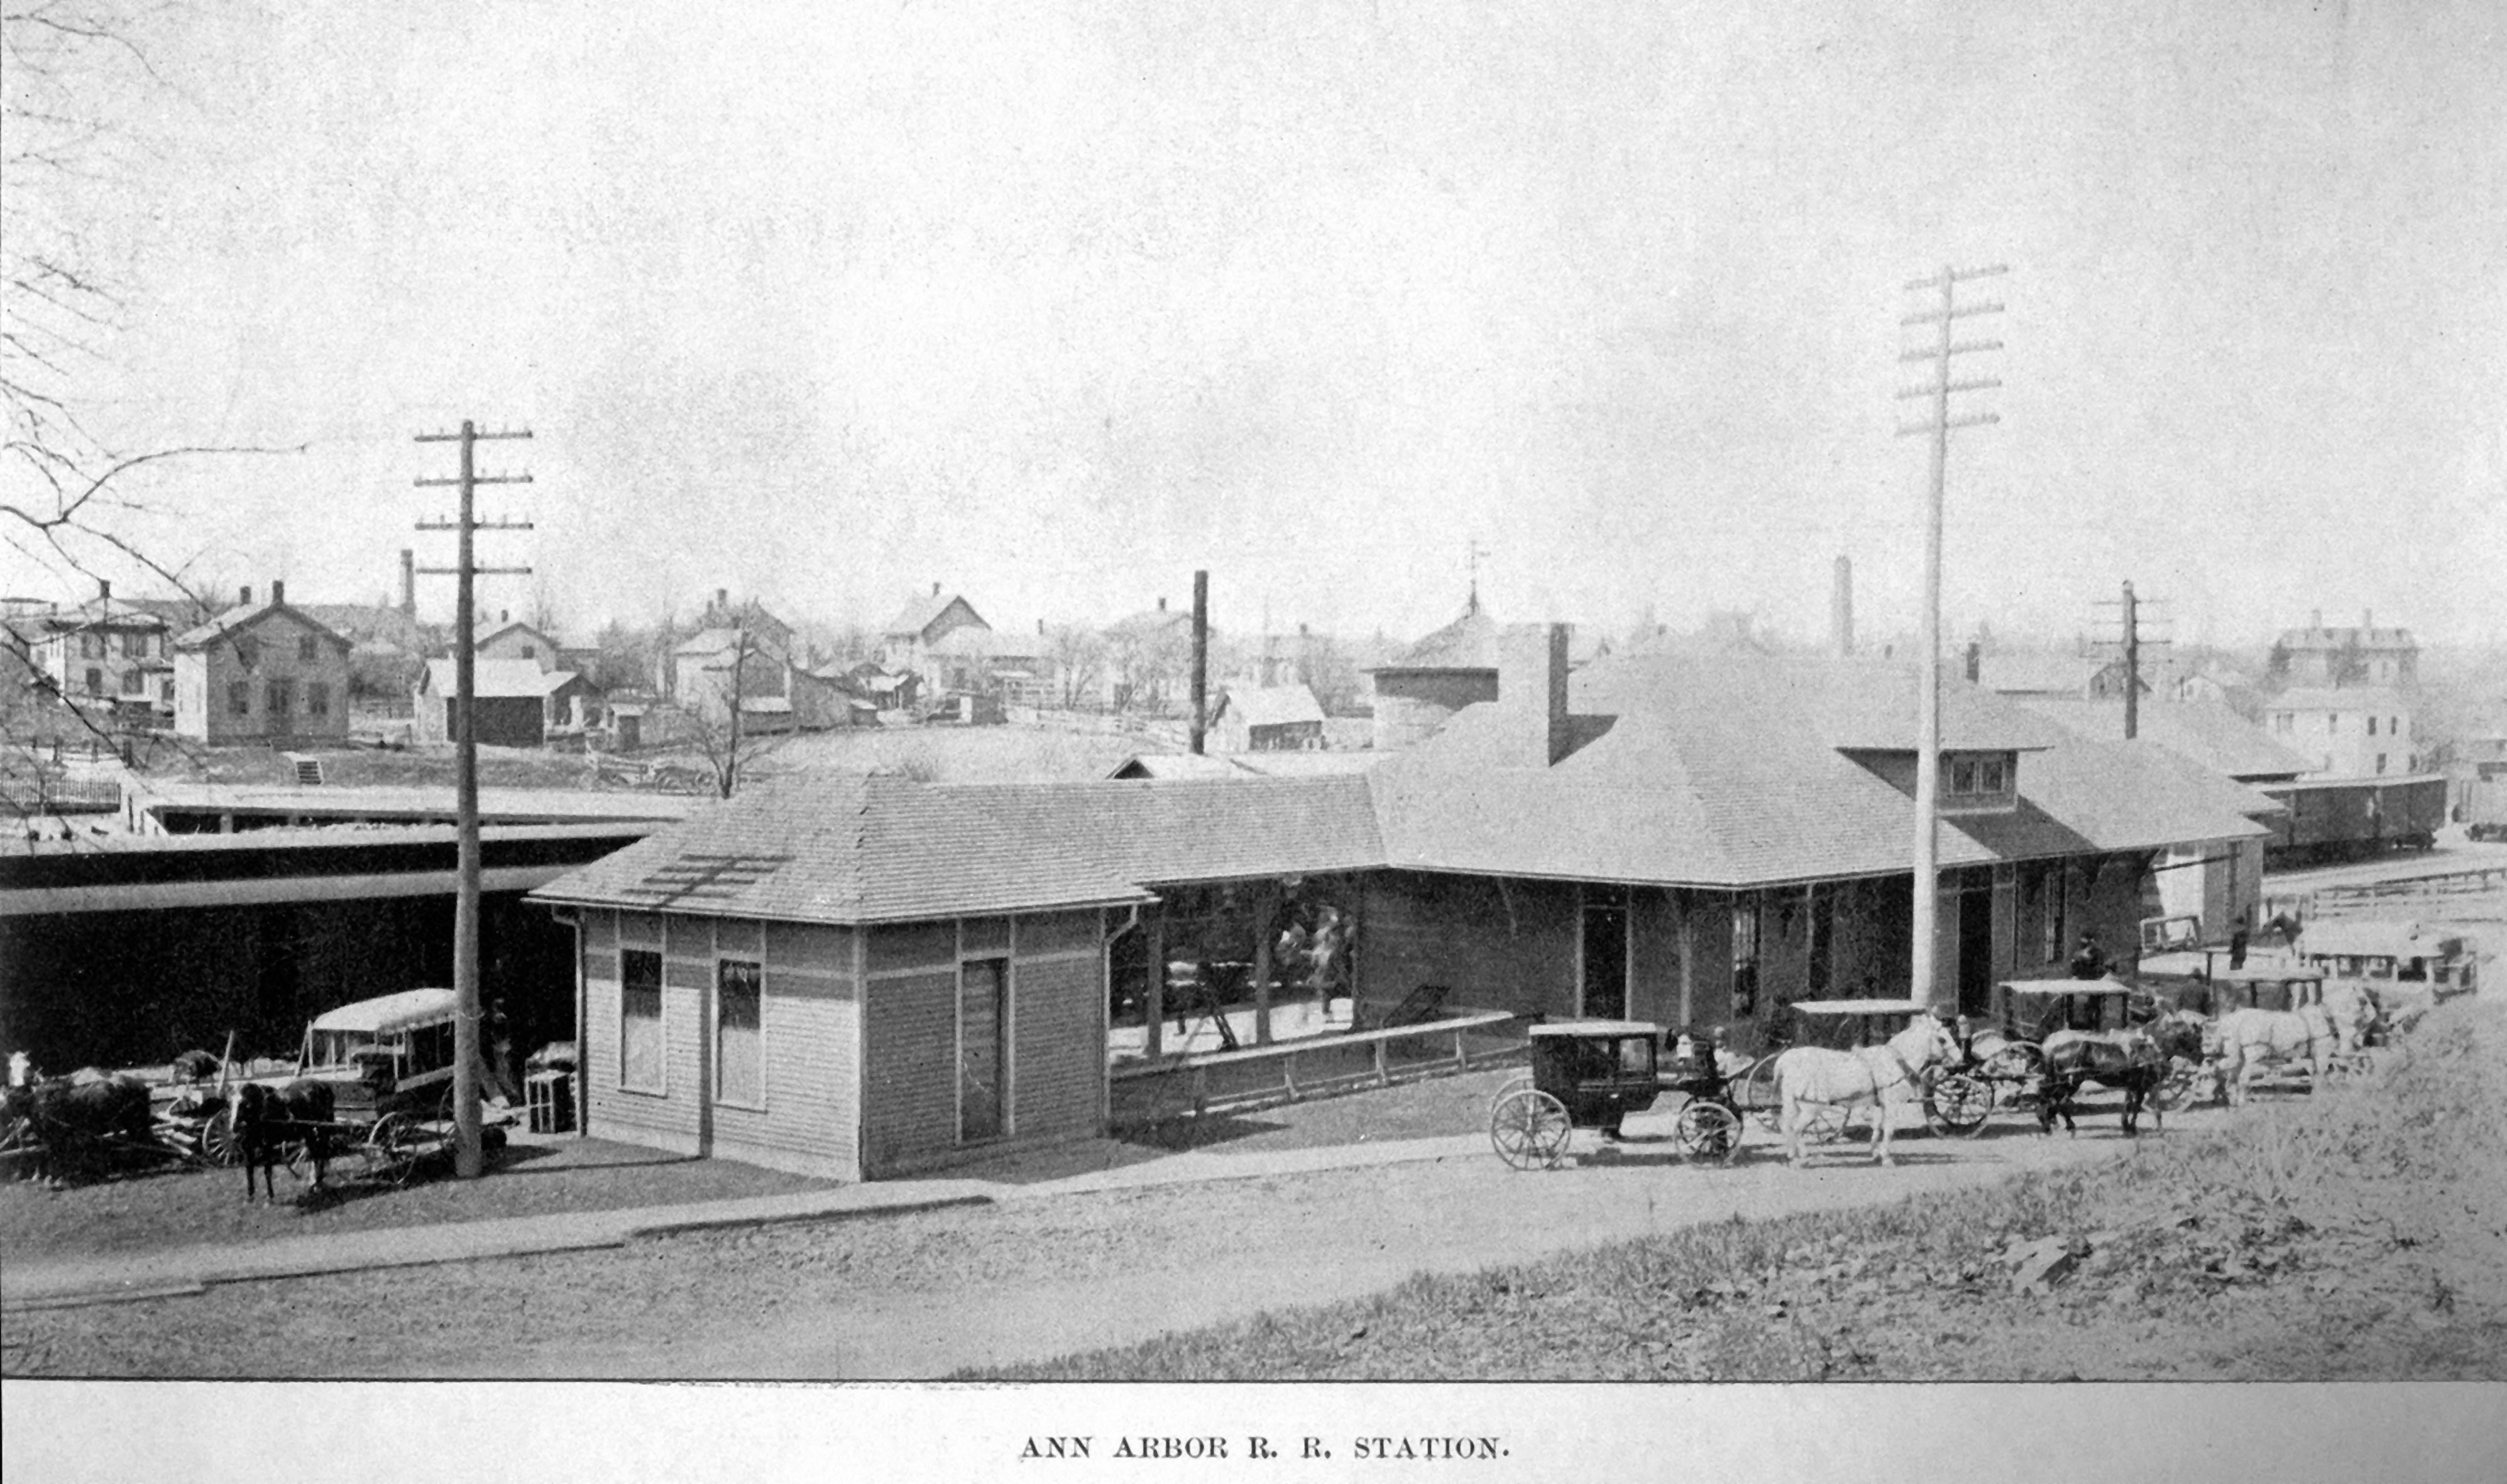 Ann Arbor Railroad Station, 1889 image